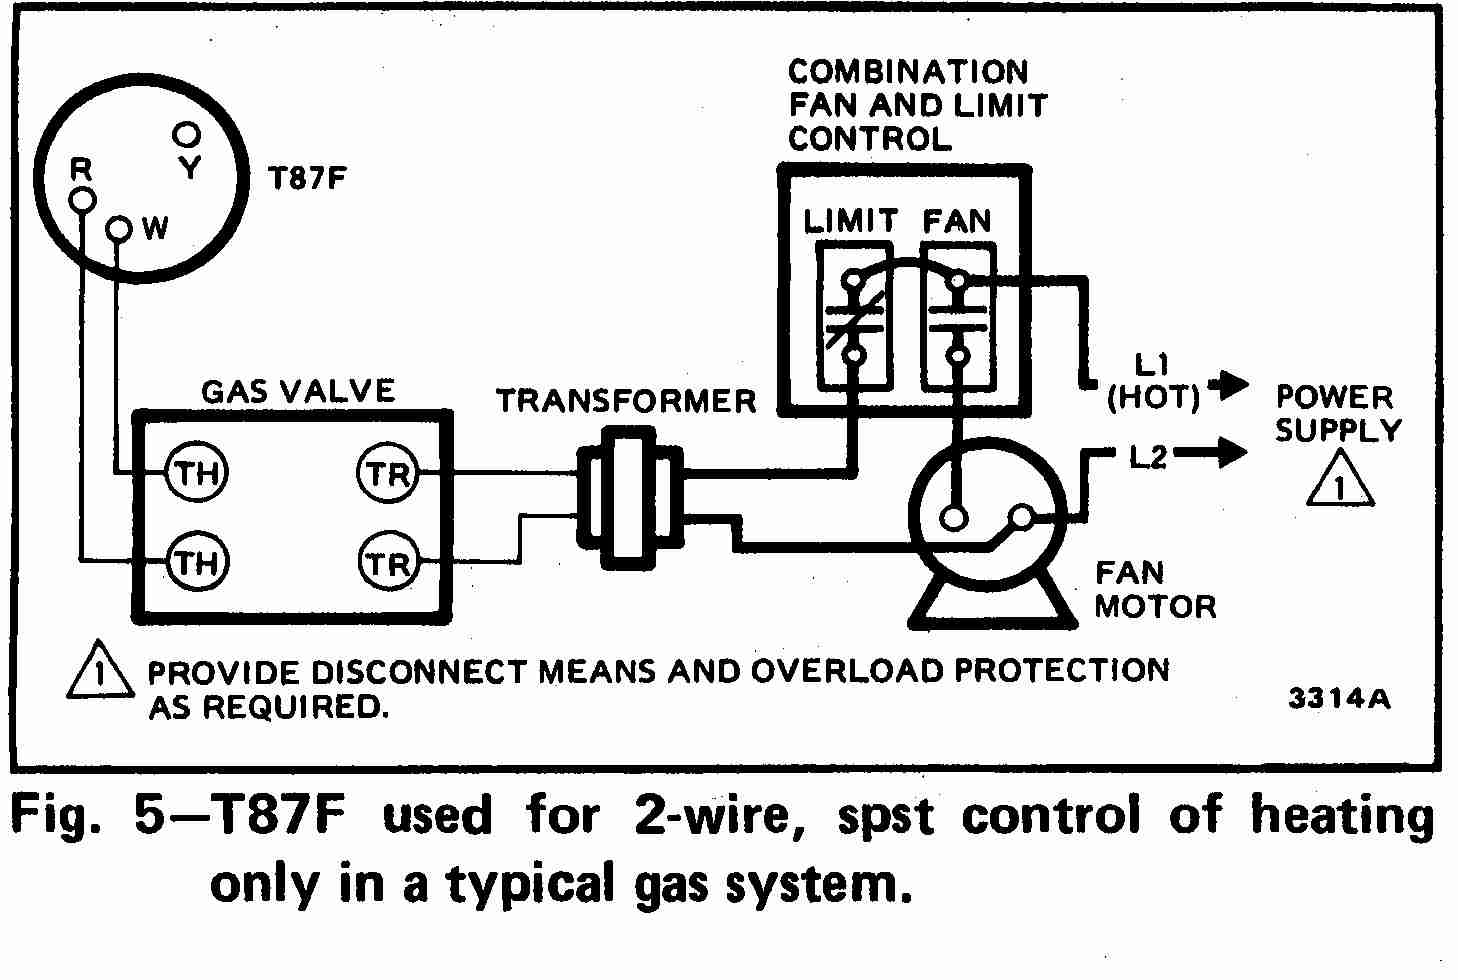 Guide to wiring connections for room thermostats – Evcon Furnace Wiring Schematic